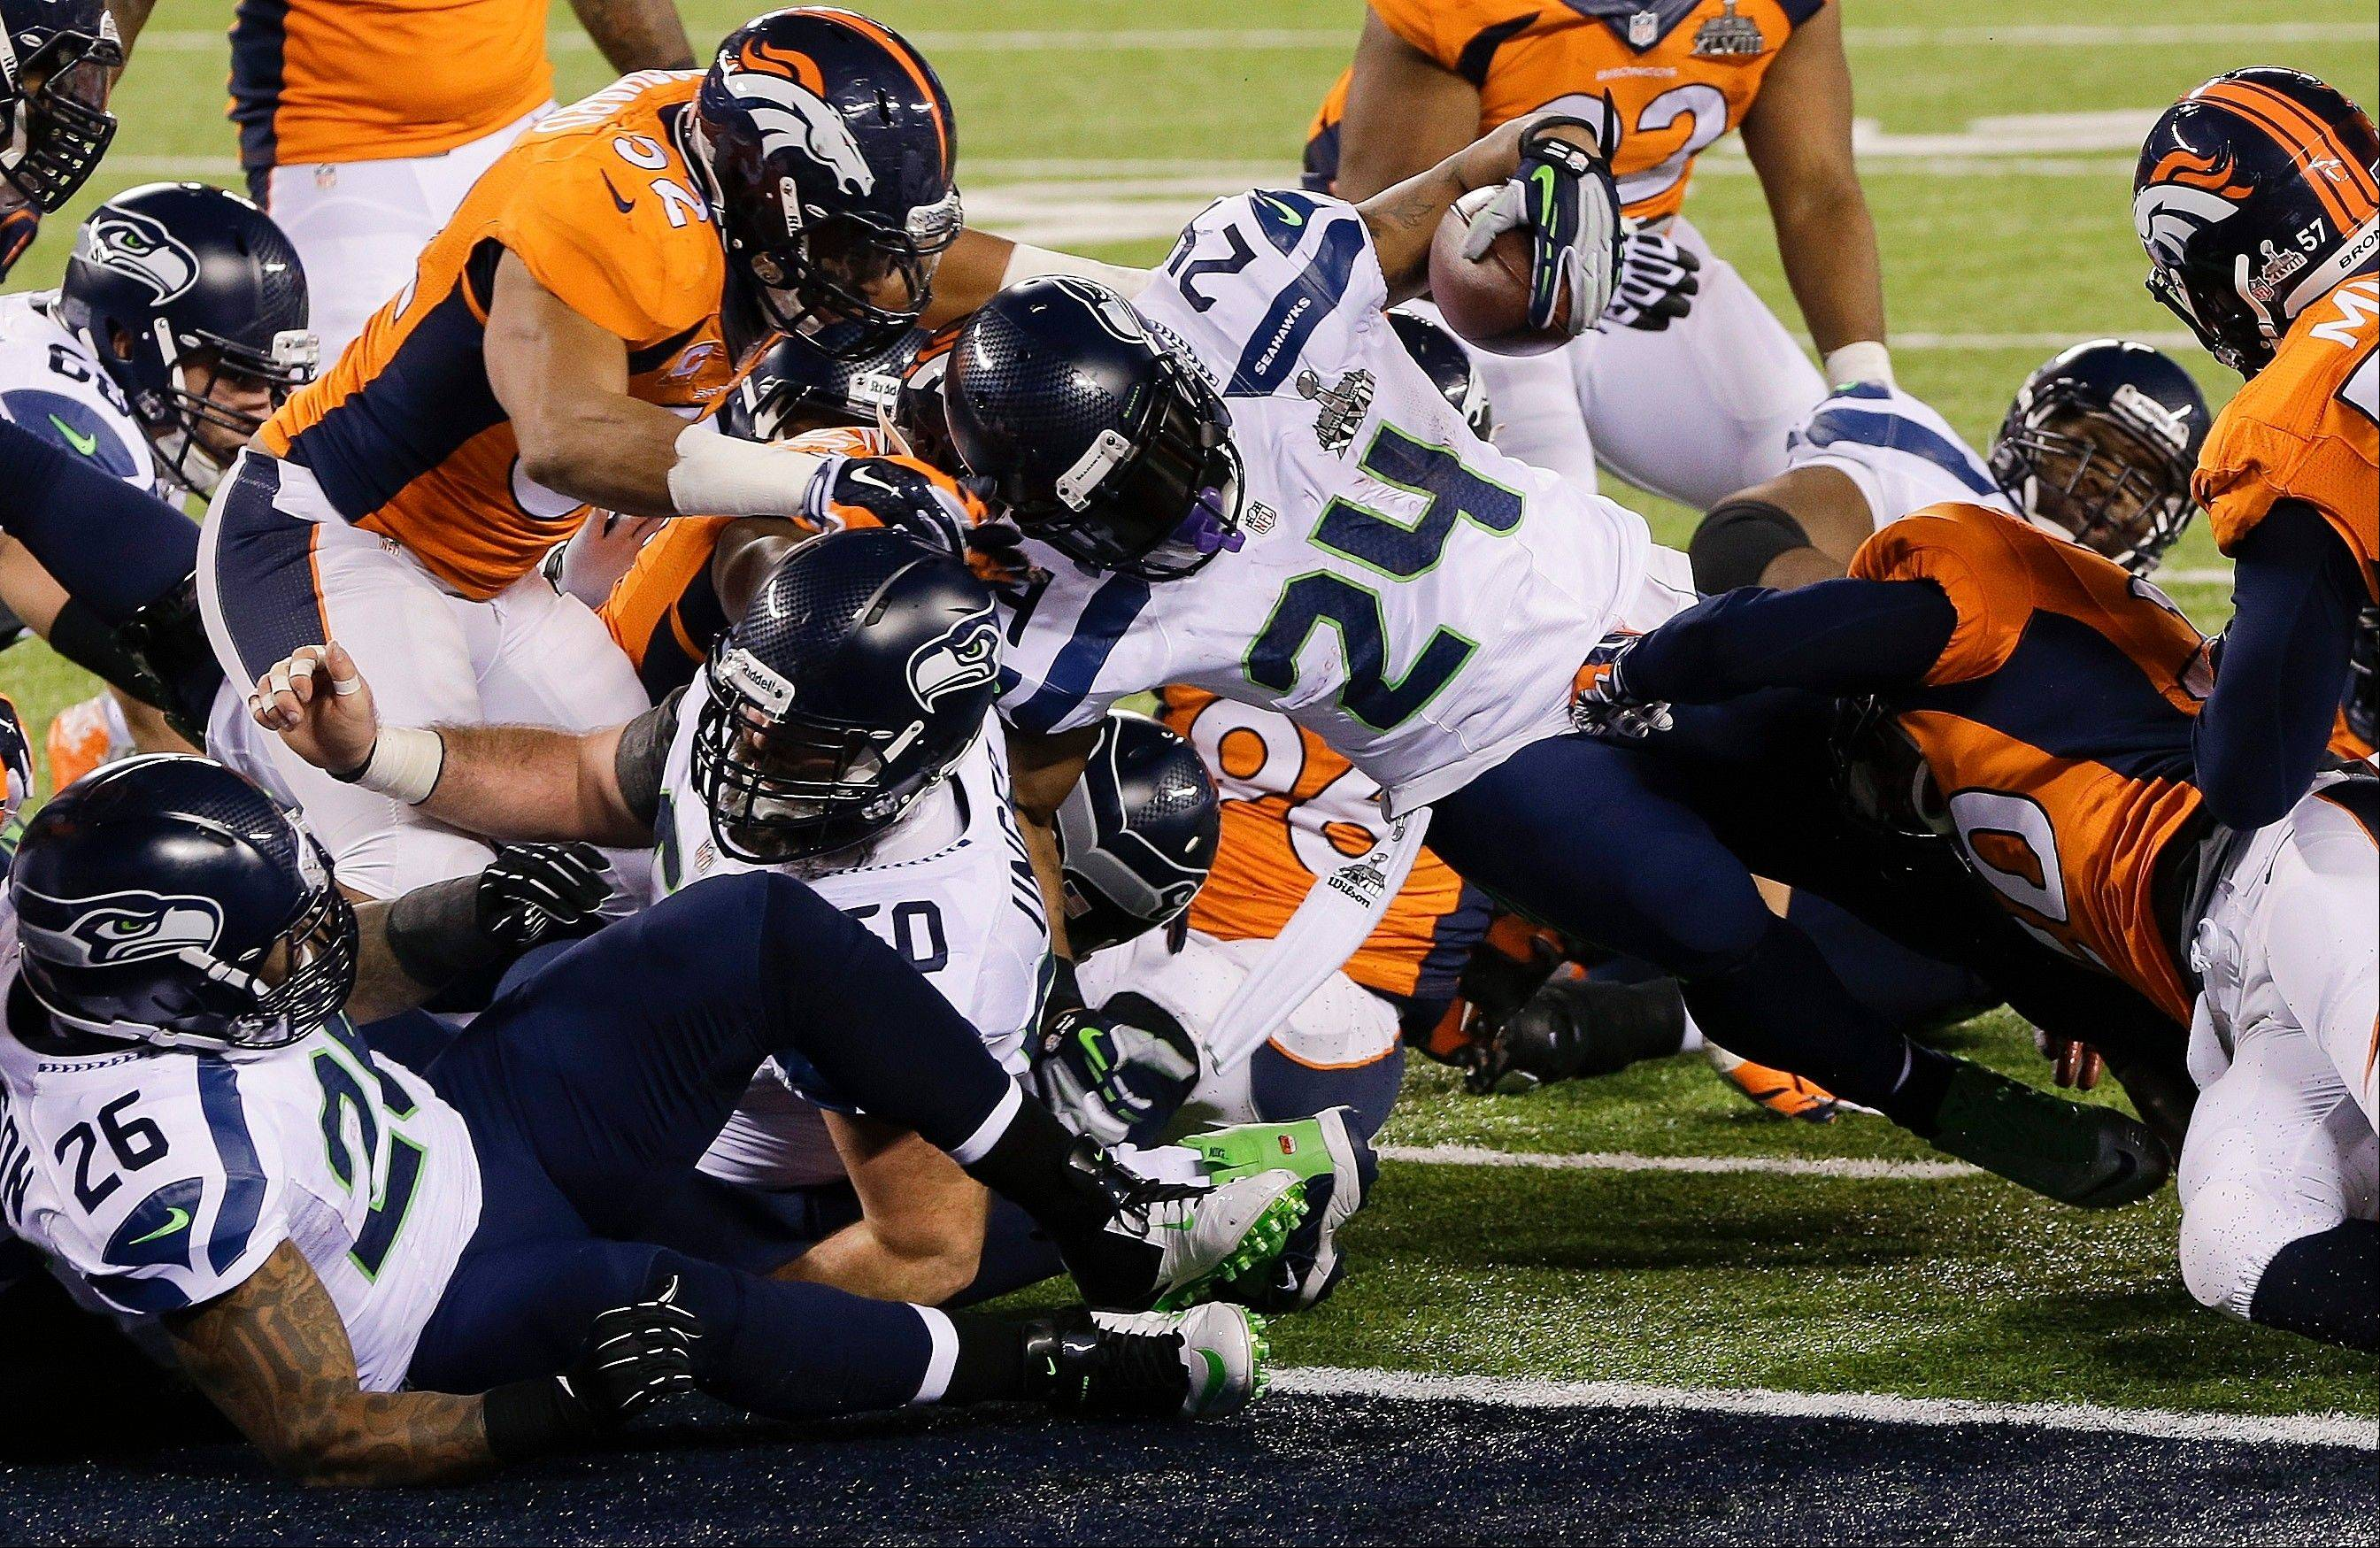 Seattle Seahawks running back Marshawn Lynch (24) pushes his way into the end zone for a touchdown run against the Denver Broncos during the first half.